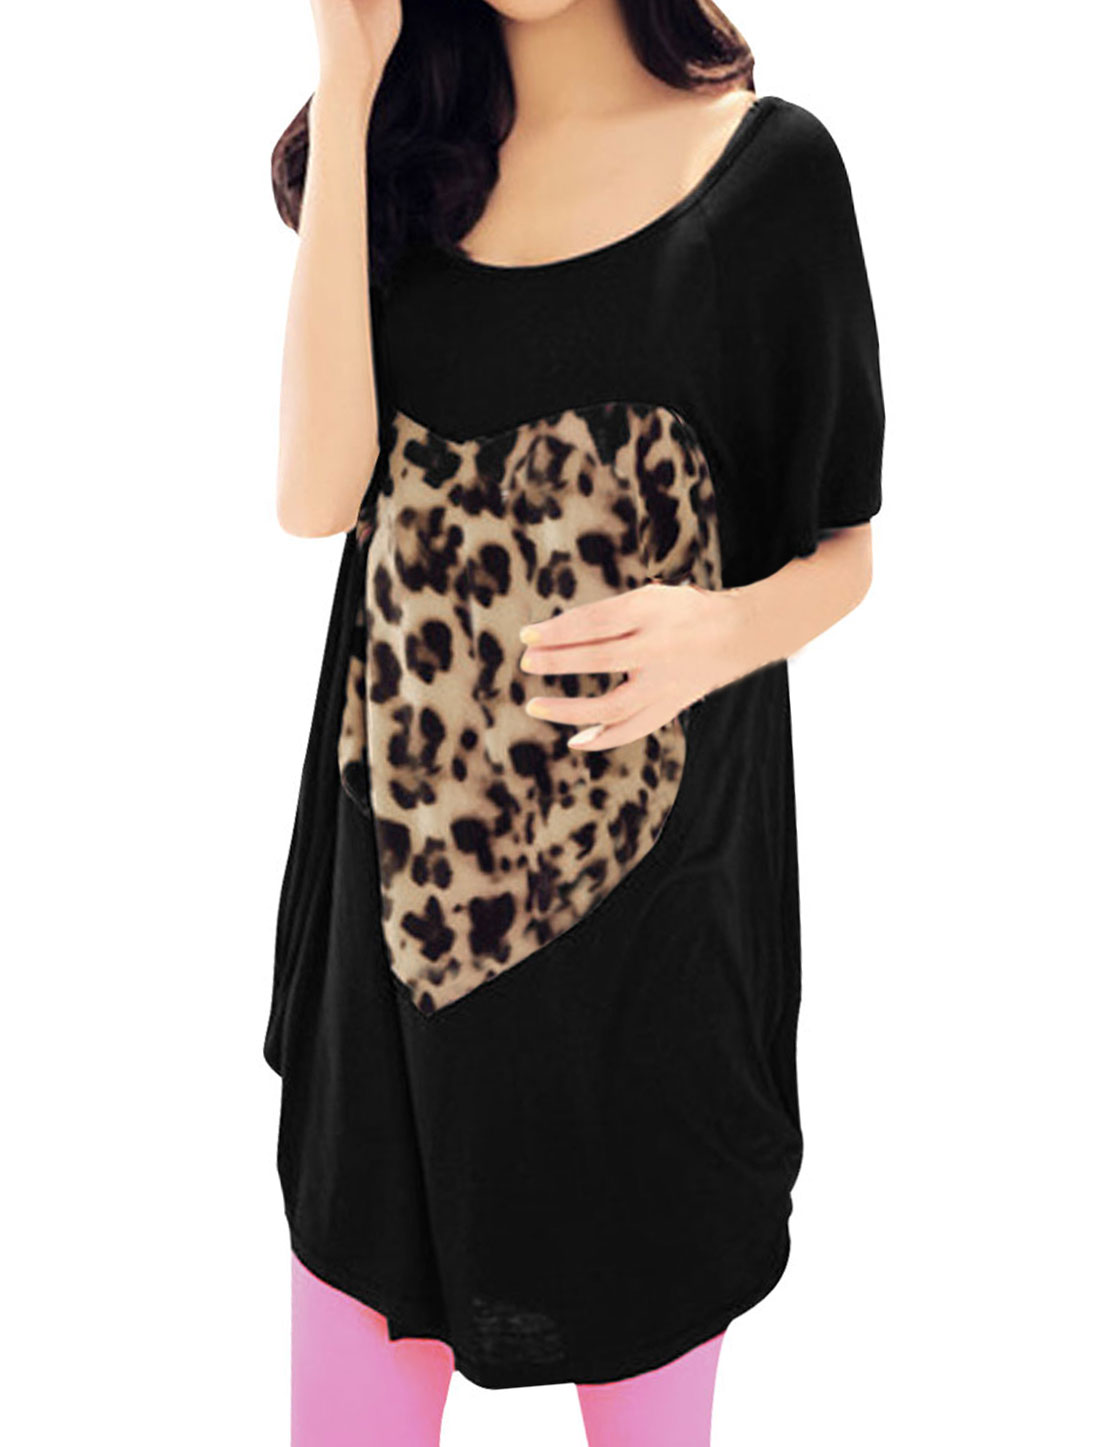 Ladies Black Leopard Print Patch Casual Summer Short Sleeves Shirt S